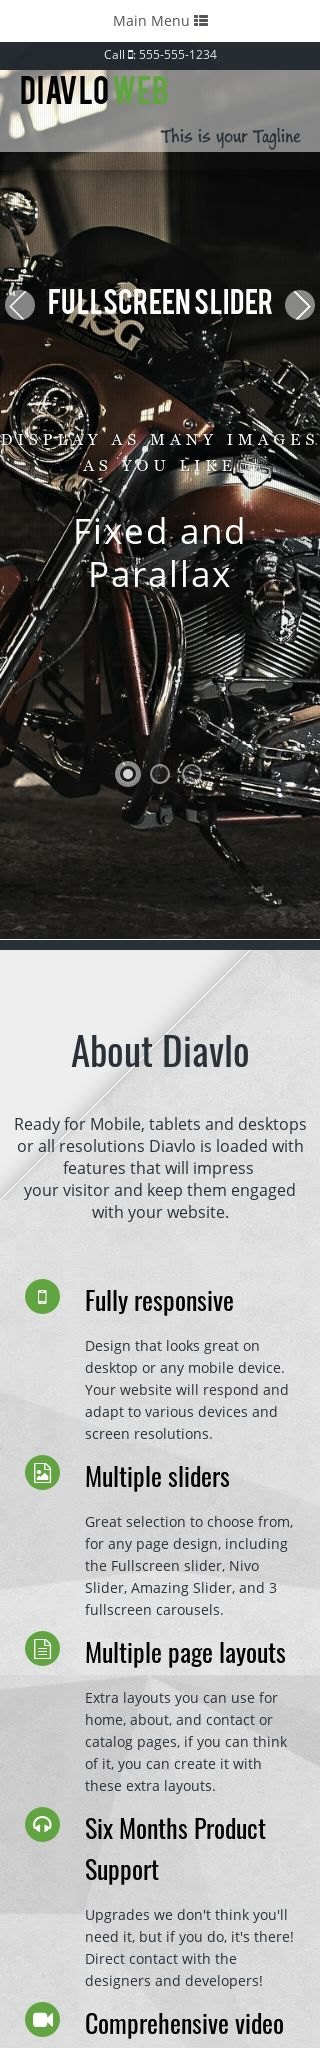 Mobile: Motorcycle Dreamweaver Template